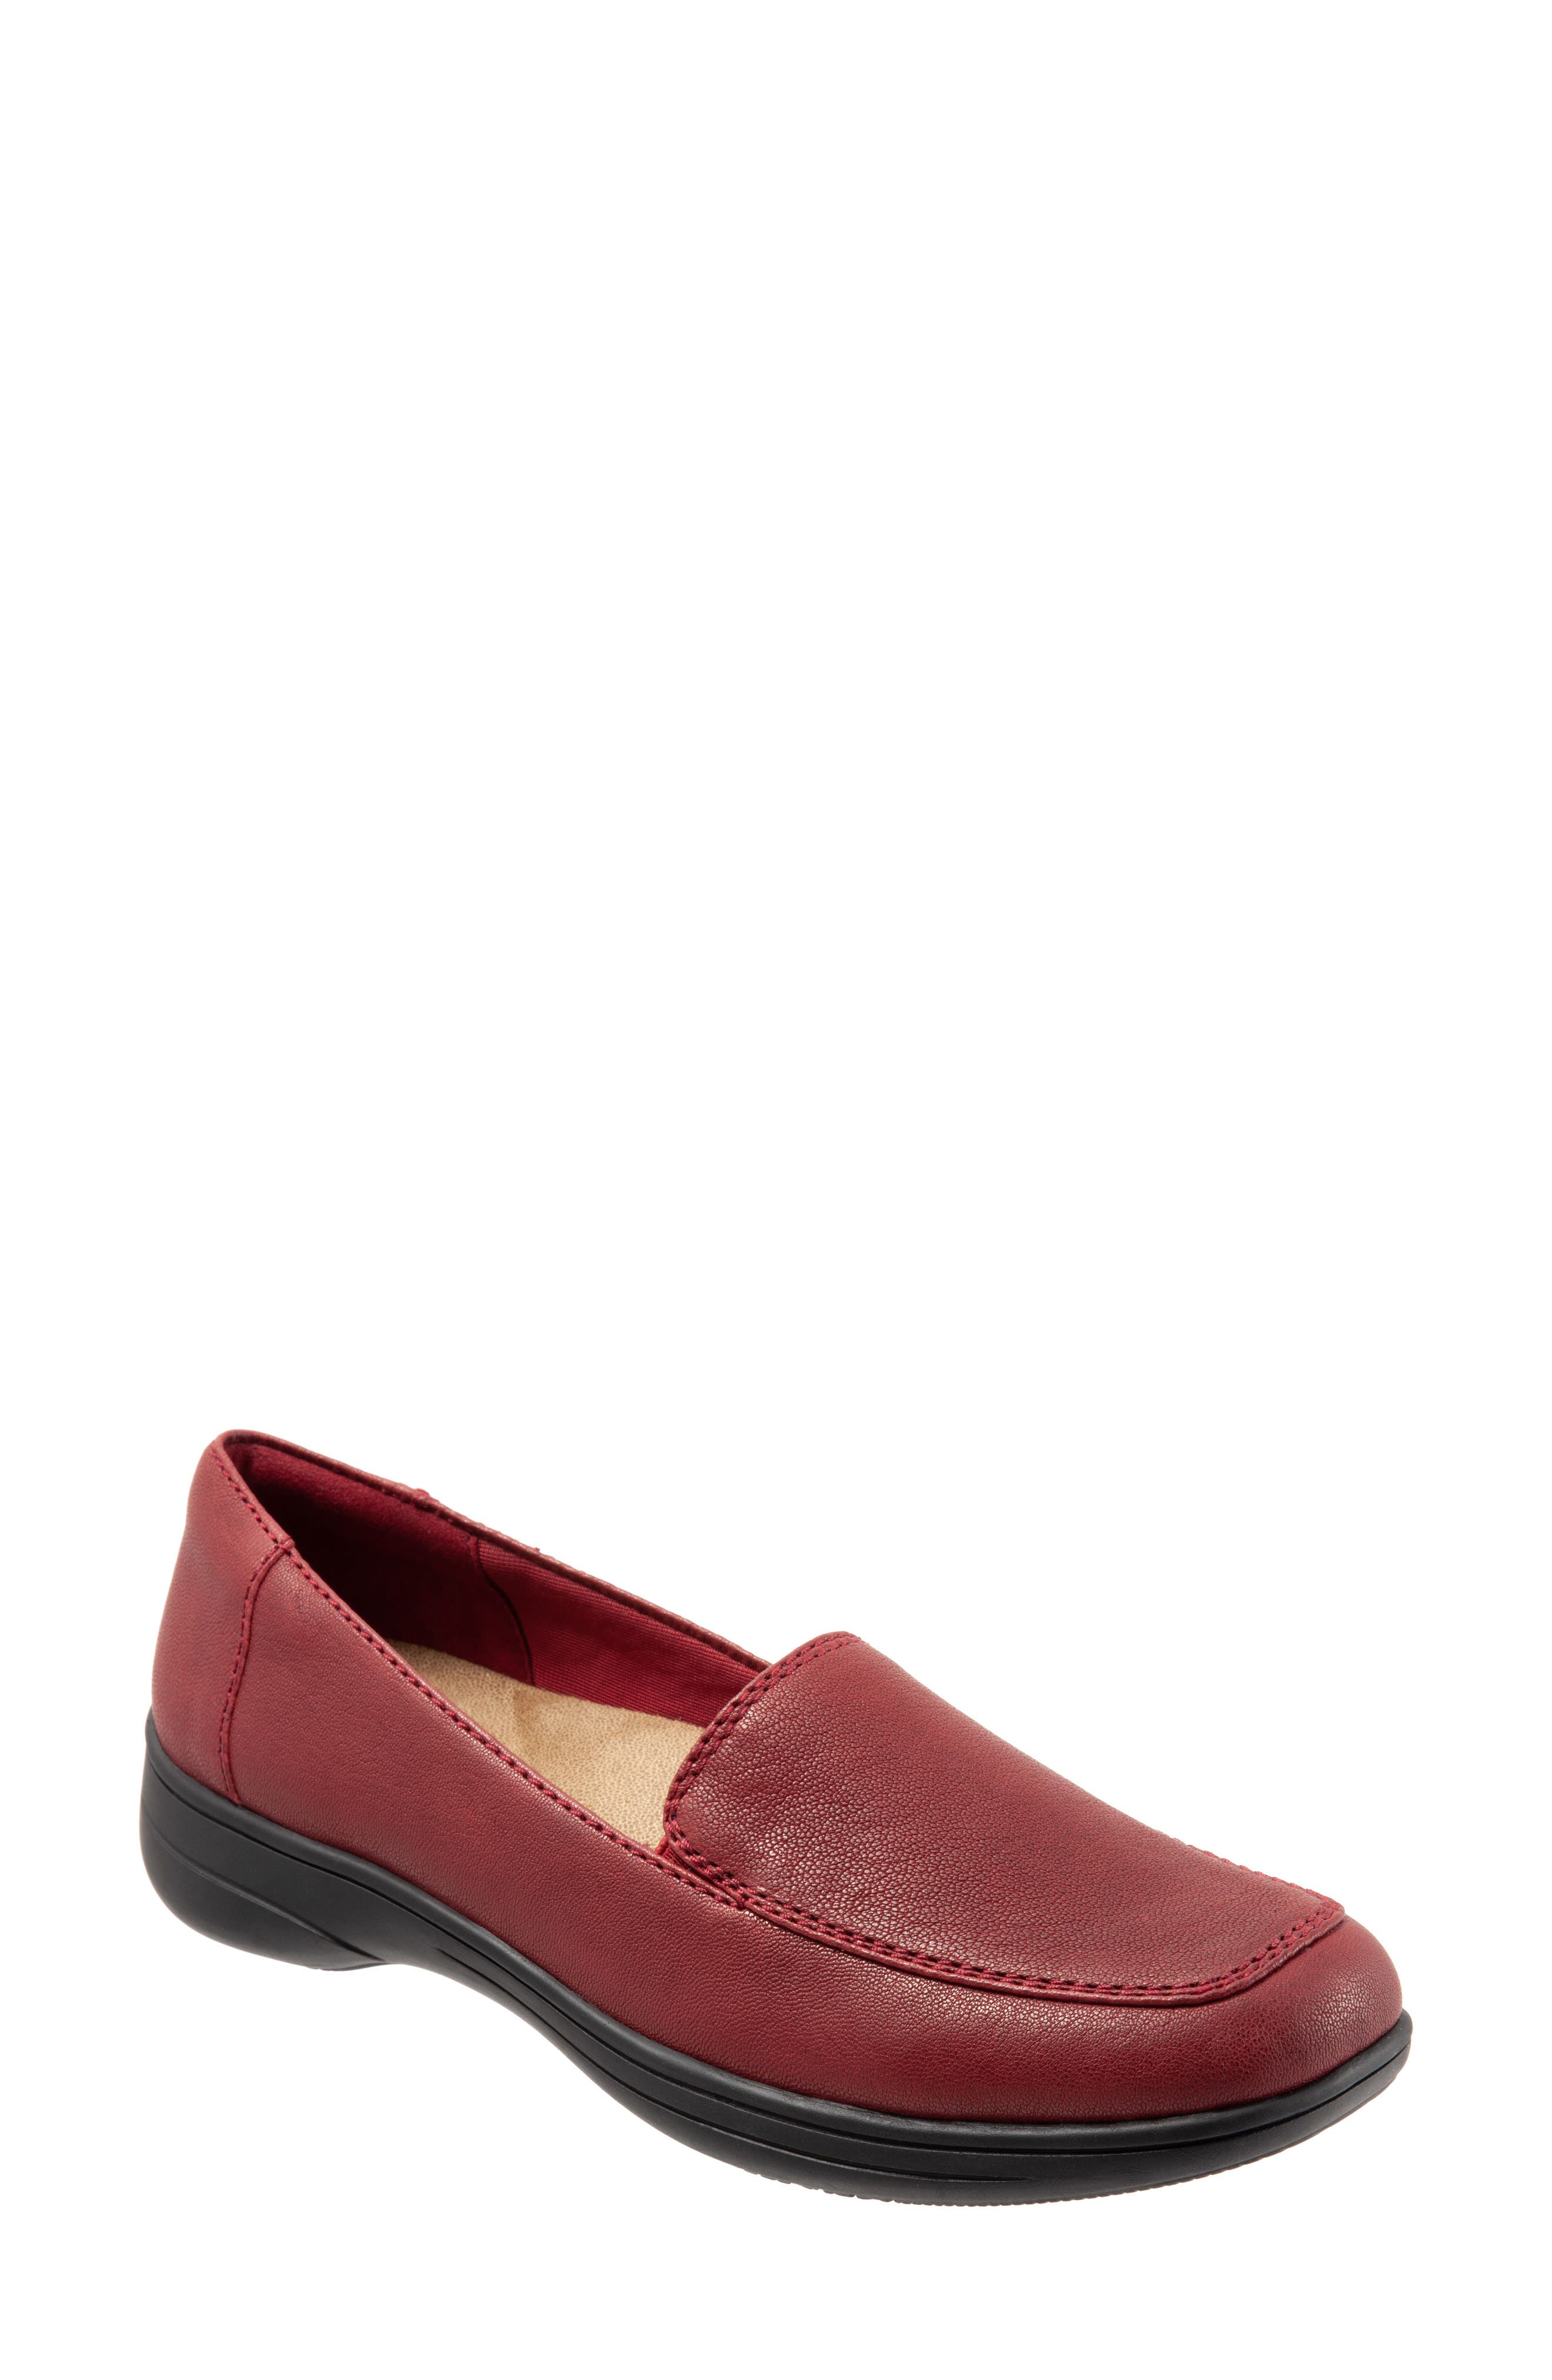 Jacob Loafer,                             Main thumbnail 1, color,                             DARK RED LEATHER